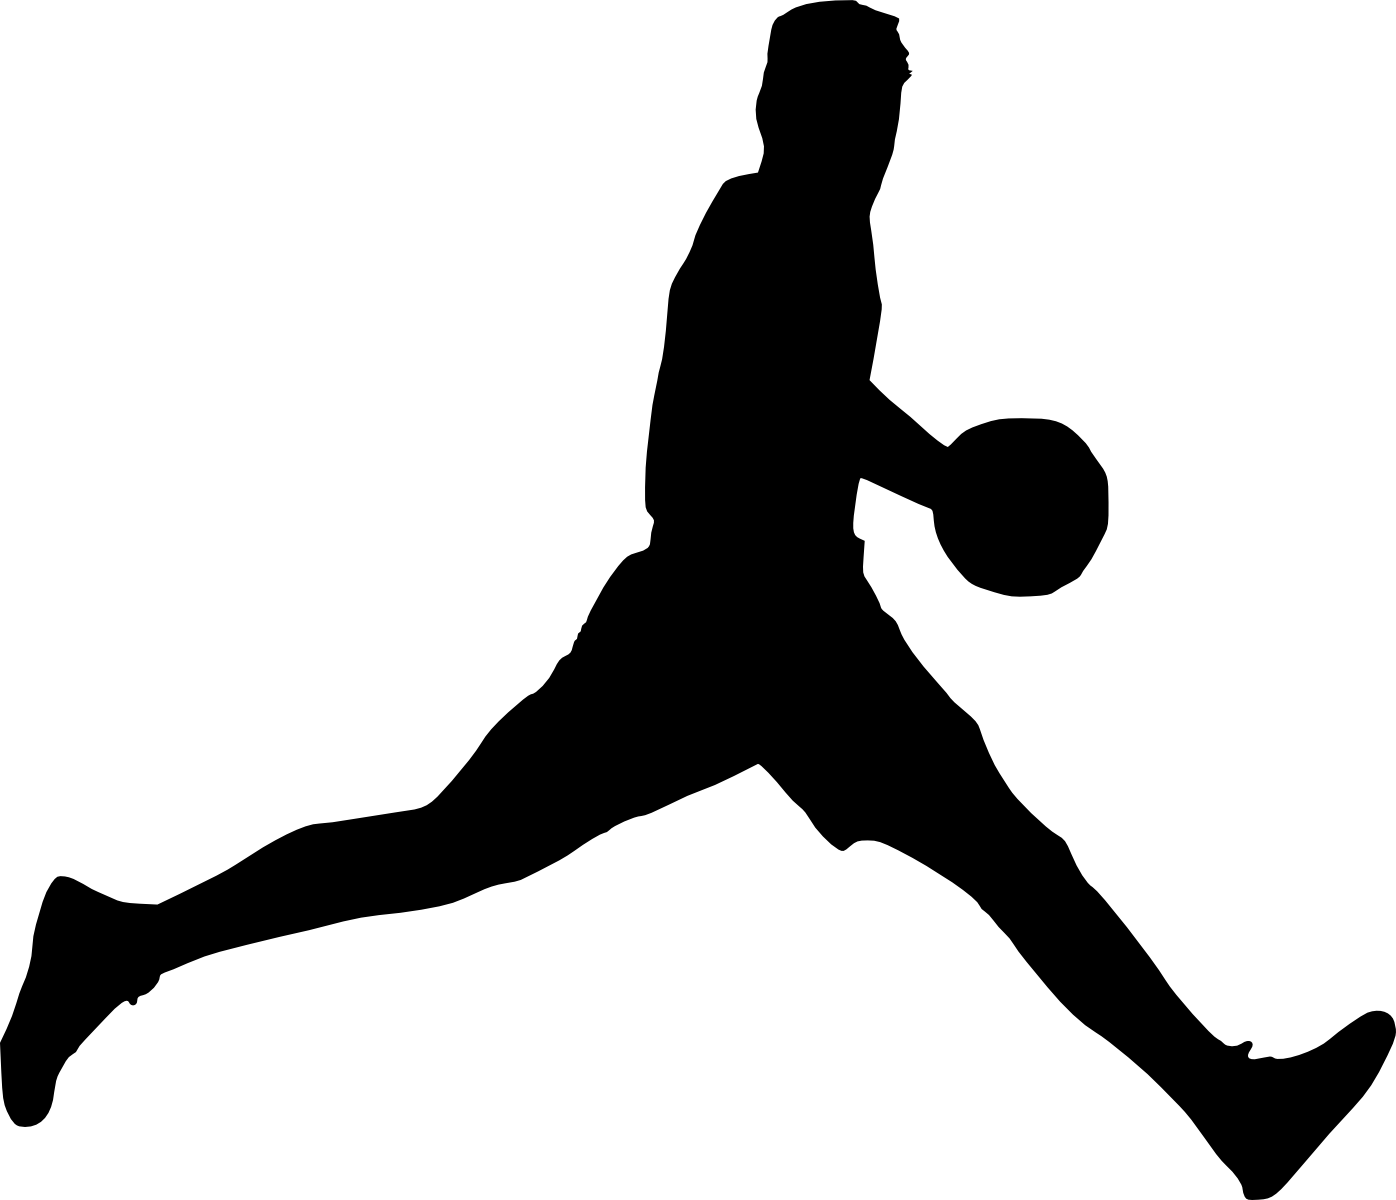 Basketball player clipart silhouette vector freeuse library Silhouette Of A Basketball Player at GetDrawings.com | Free for ... vector freeuse library